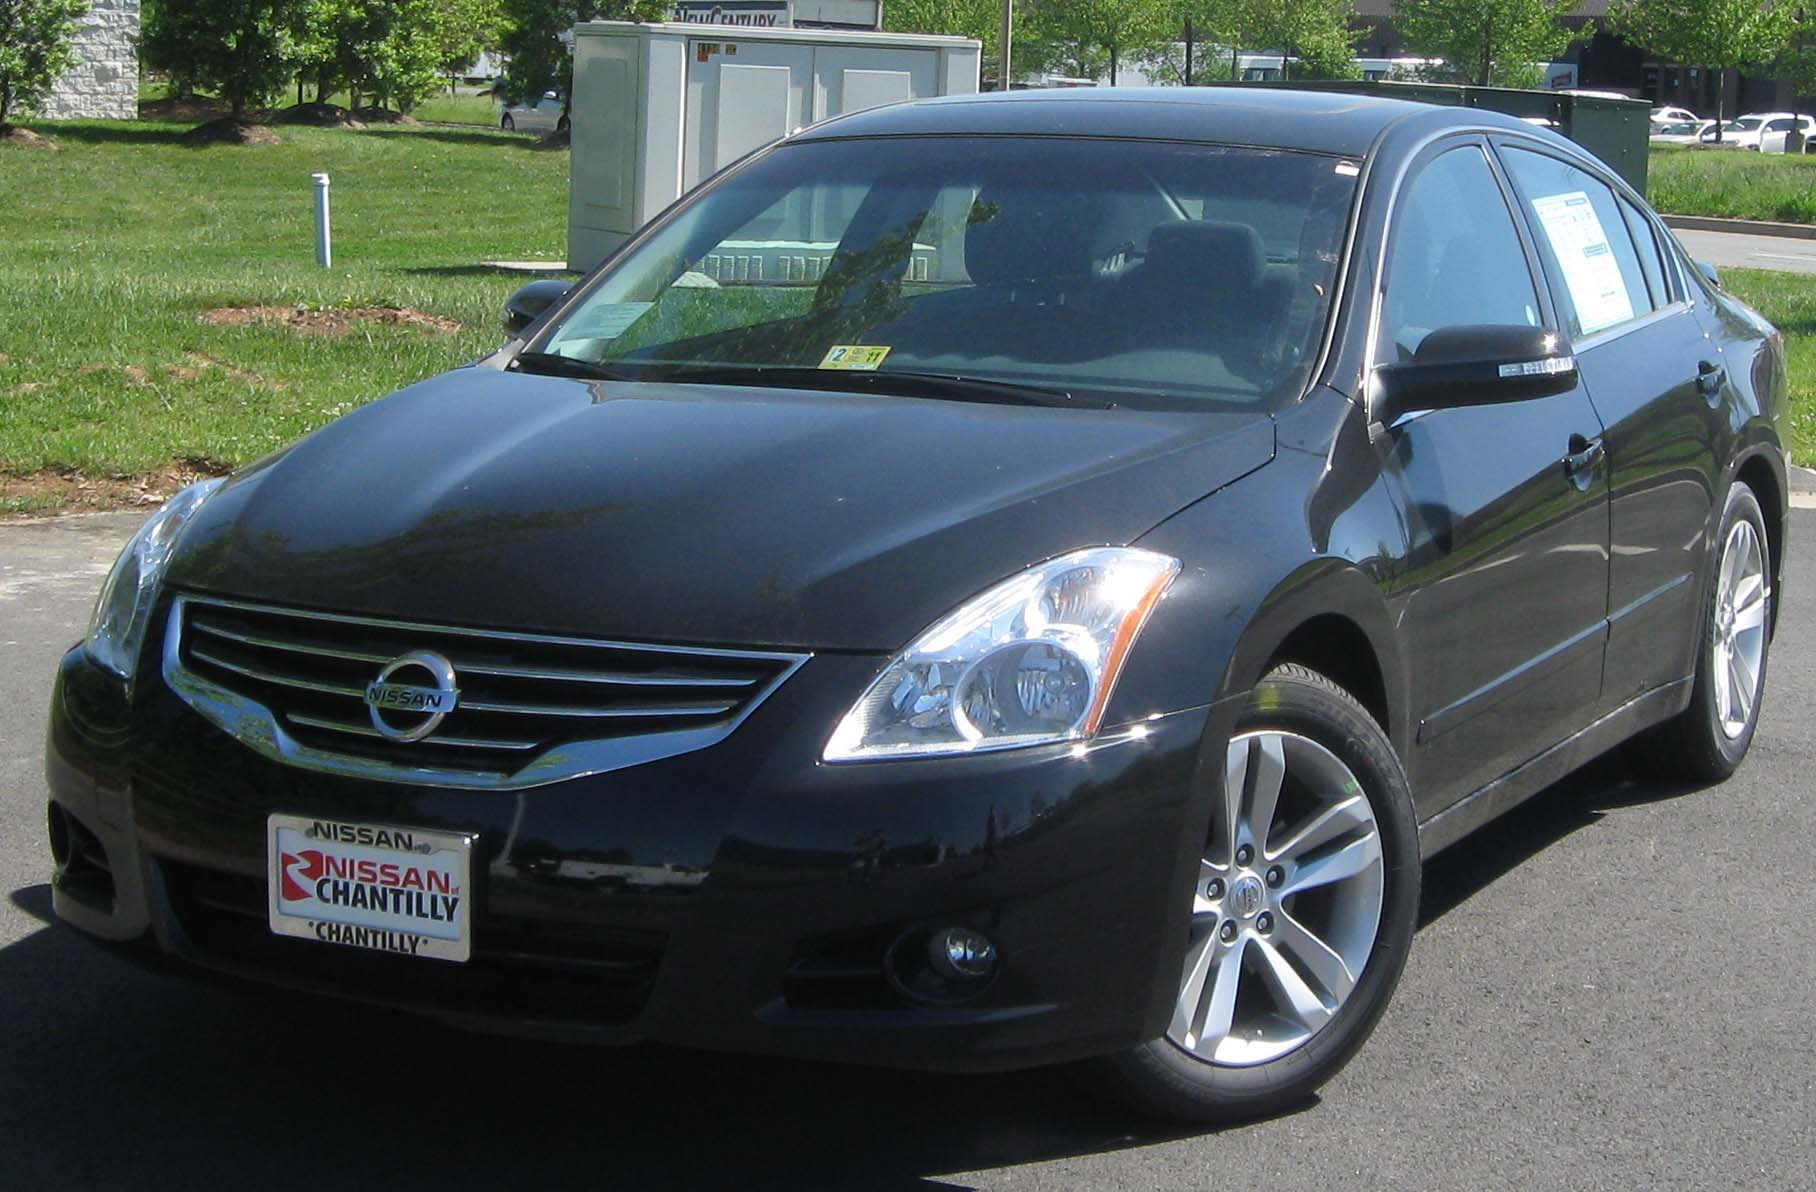 2013 Nissan Altima Iv Pictures Information And Specs Auto 2014 S Wiring Diagram Wallpaper 5